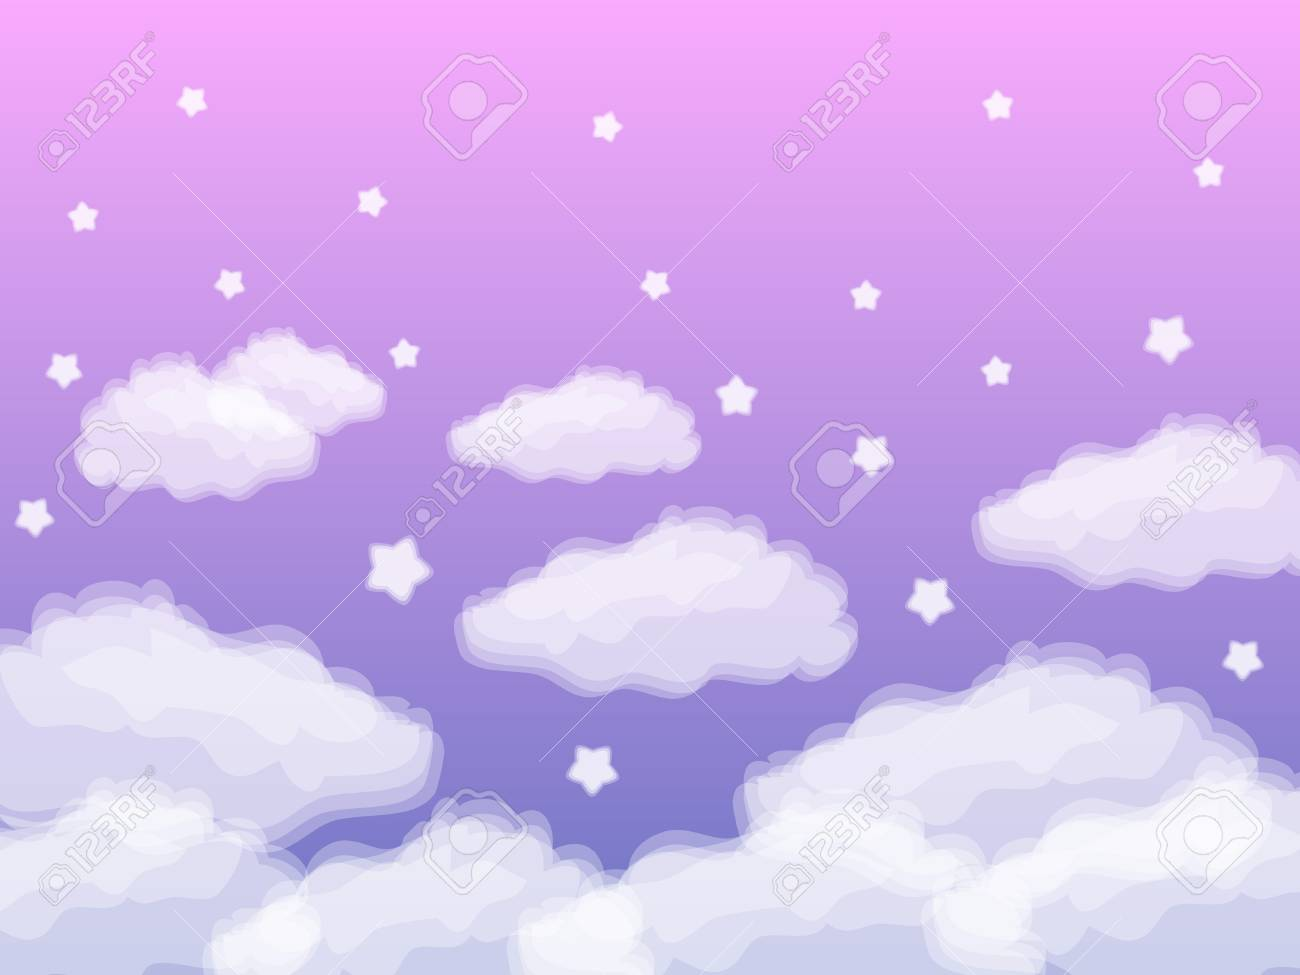 White Star And Cloud Background On Purple Background Royalty Free Cliparts Vectors And Stock Illustration Image 80875733